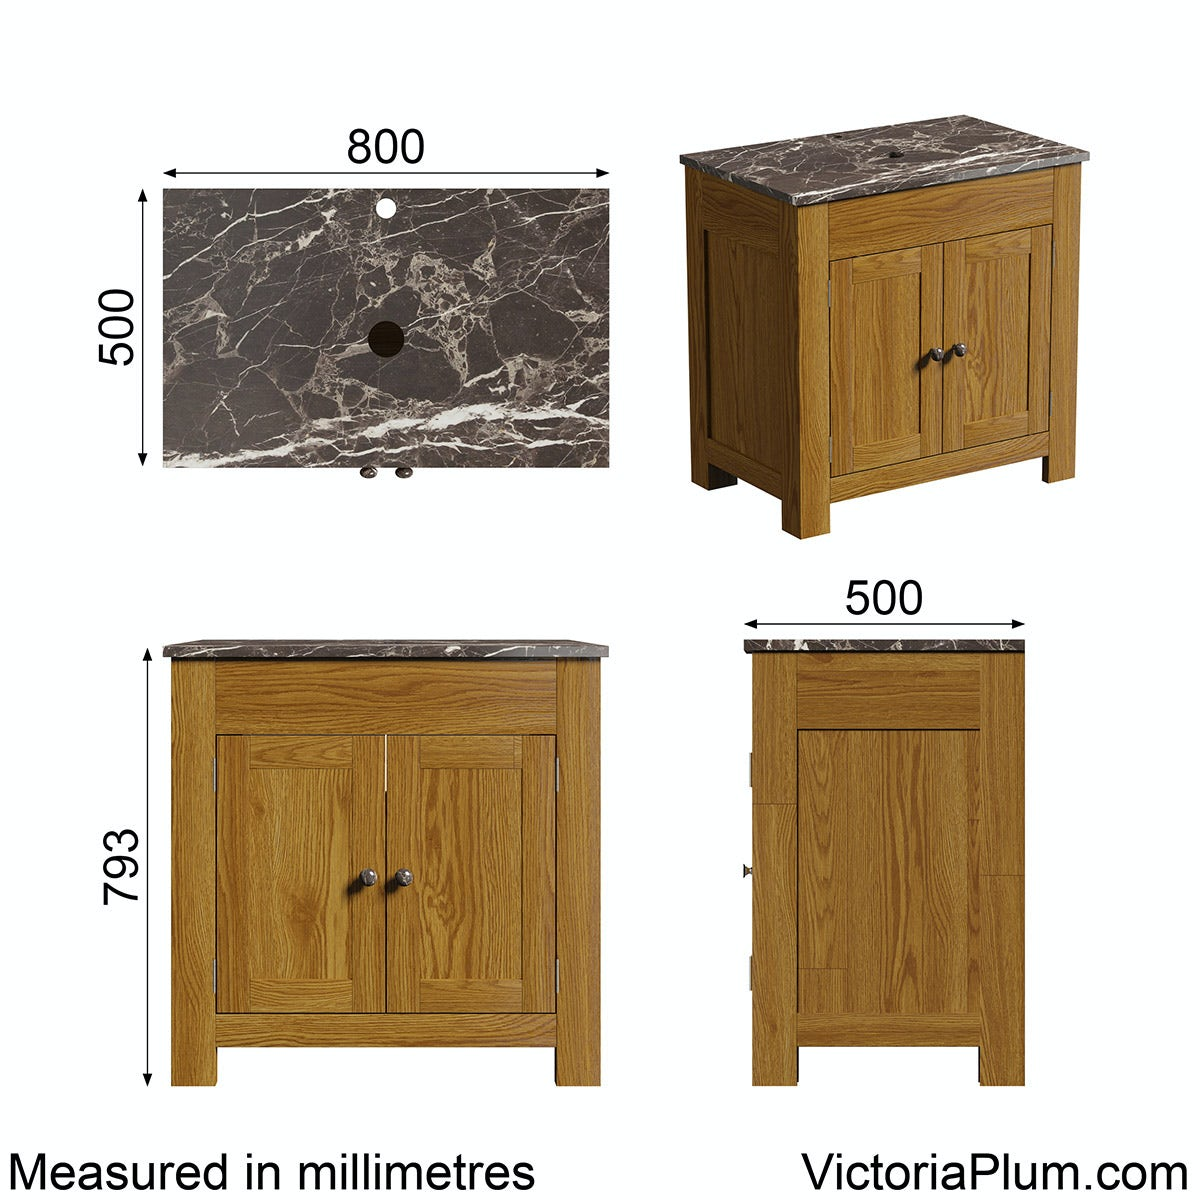 Dimensions for The Bath Co. Chester oak washstand with brown marble top 800mm